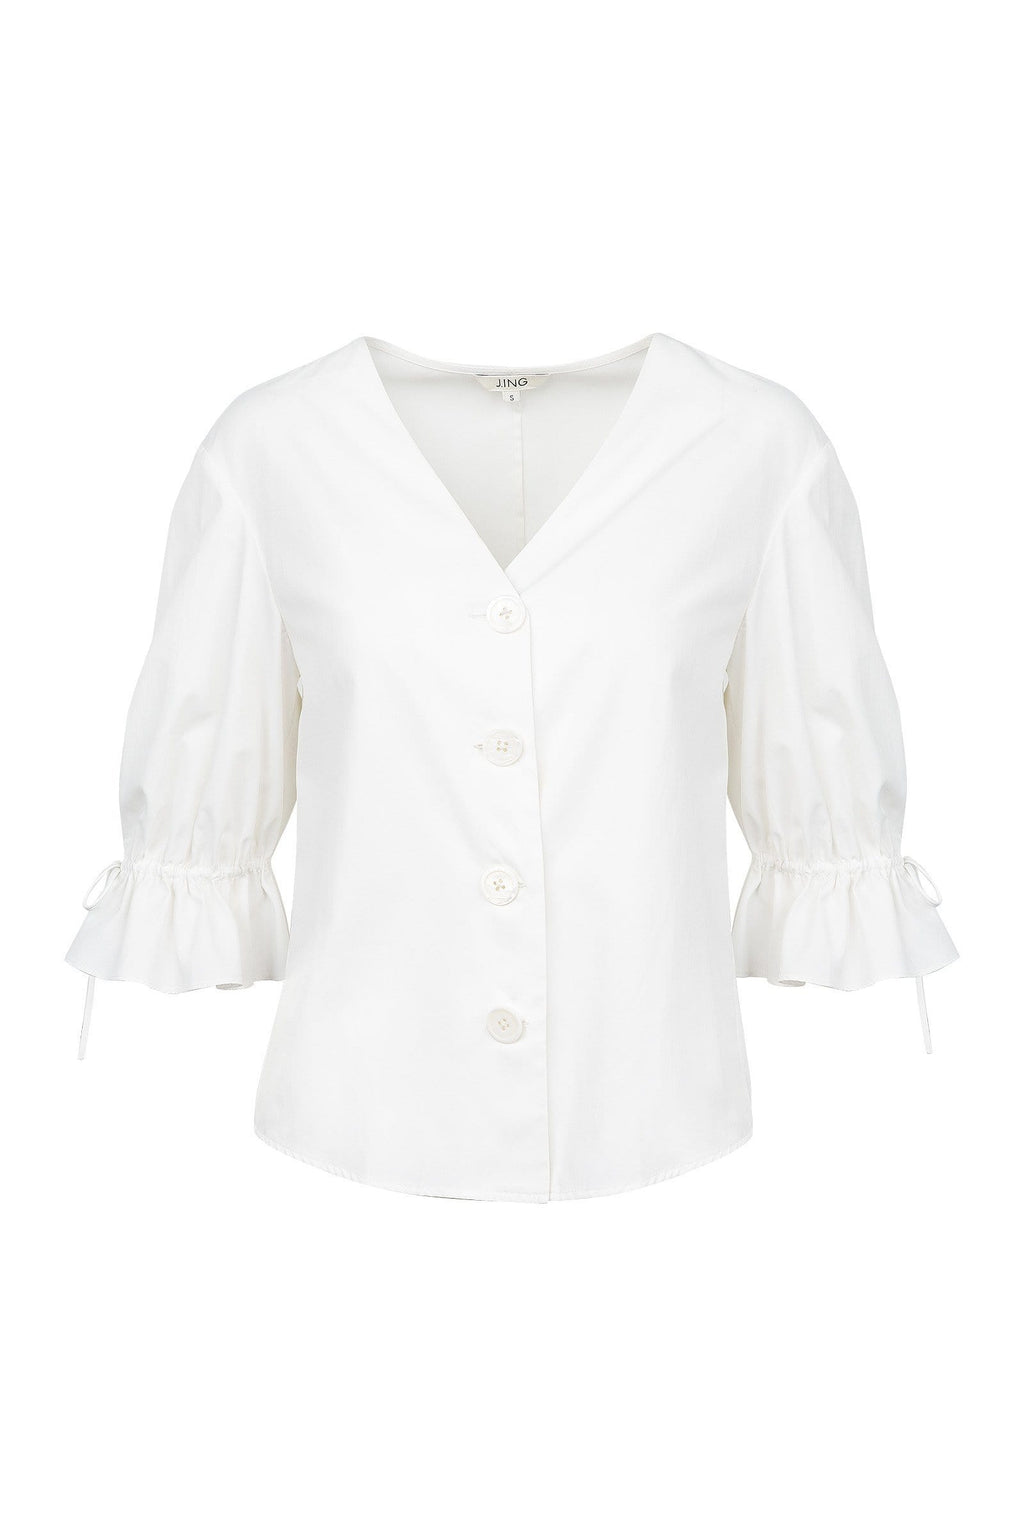 Sullivan White Peasant Blouse by J.ING women's clothing